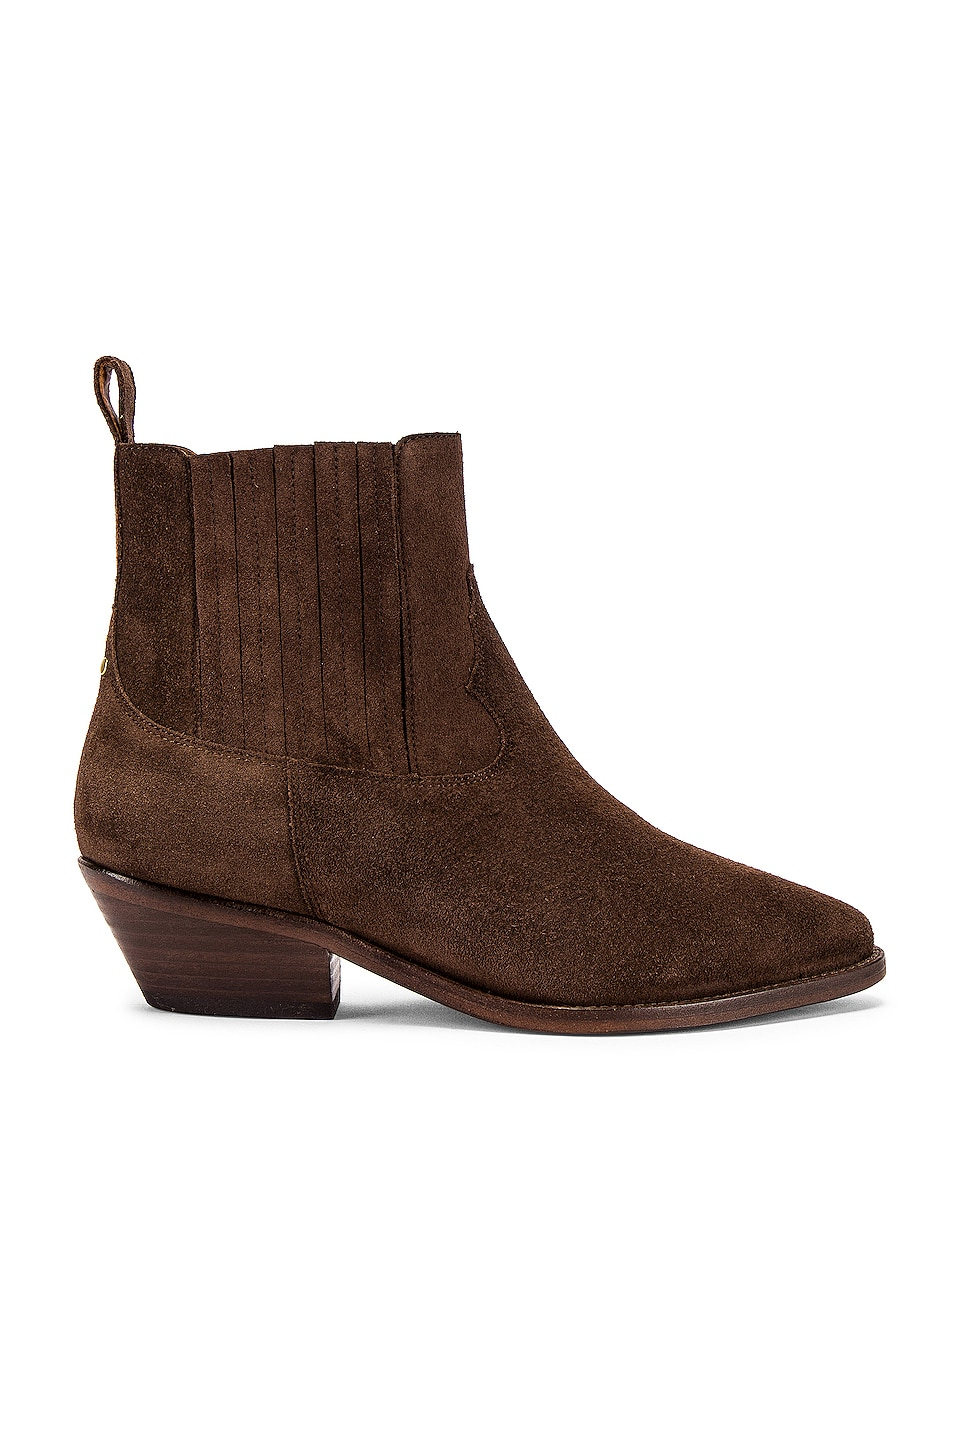 Jerome Dreyfuss Edith Bootie in Moka